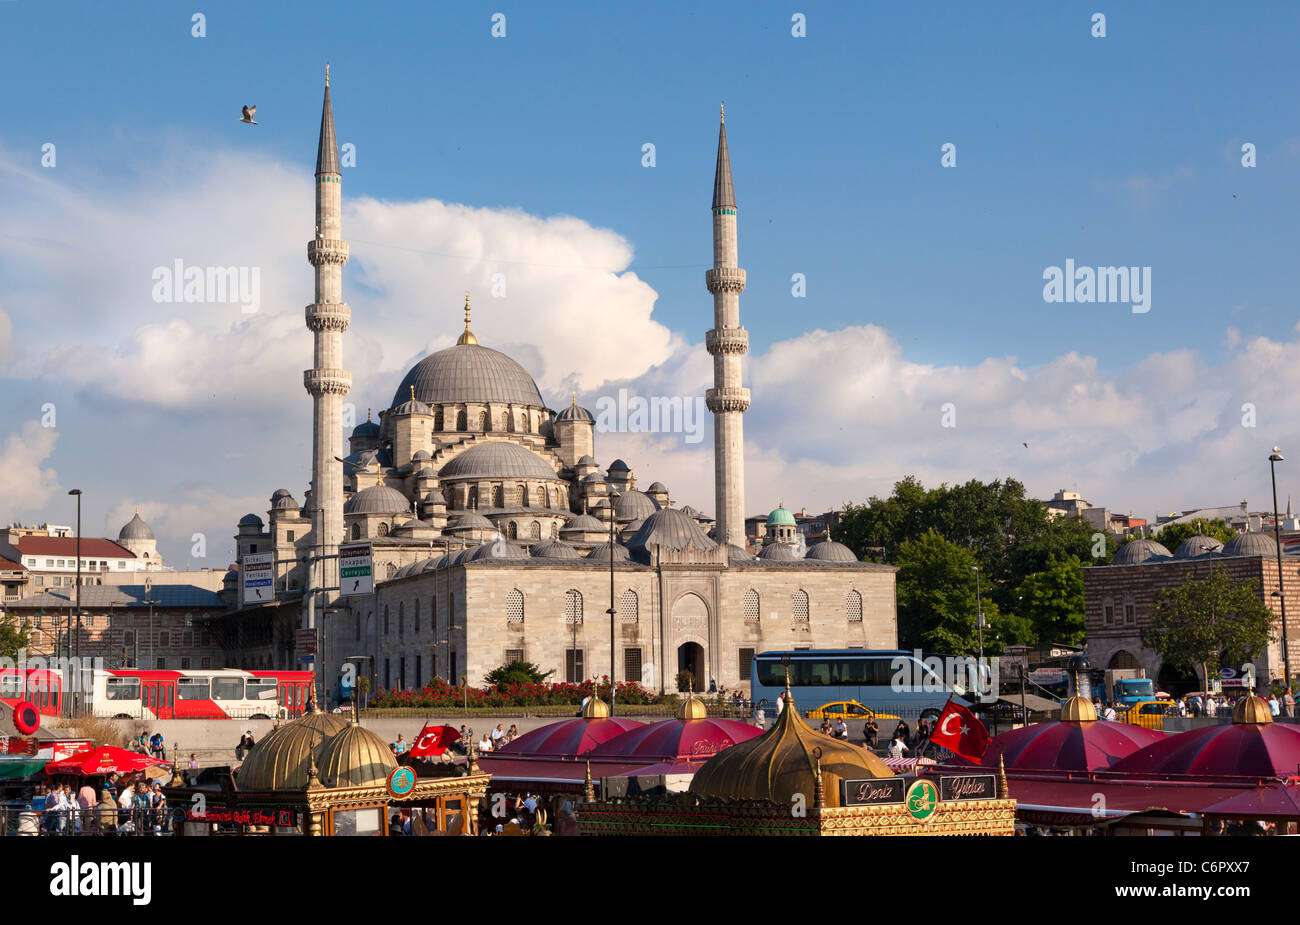 Attractive colorful roofs of the pleasure boats with the Yeni Camii Mosque (New Mosque) in the background, Eminonu, - Stock Image